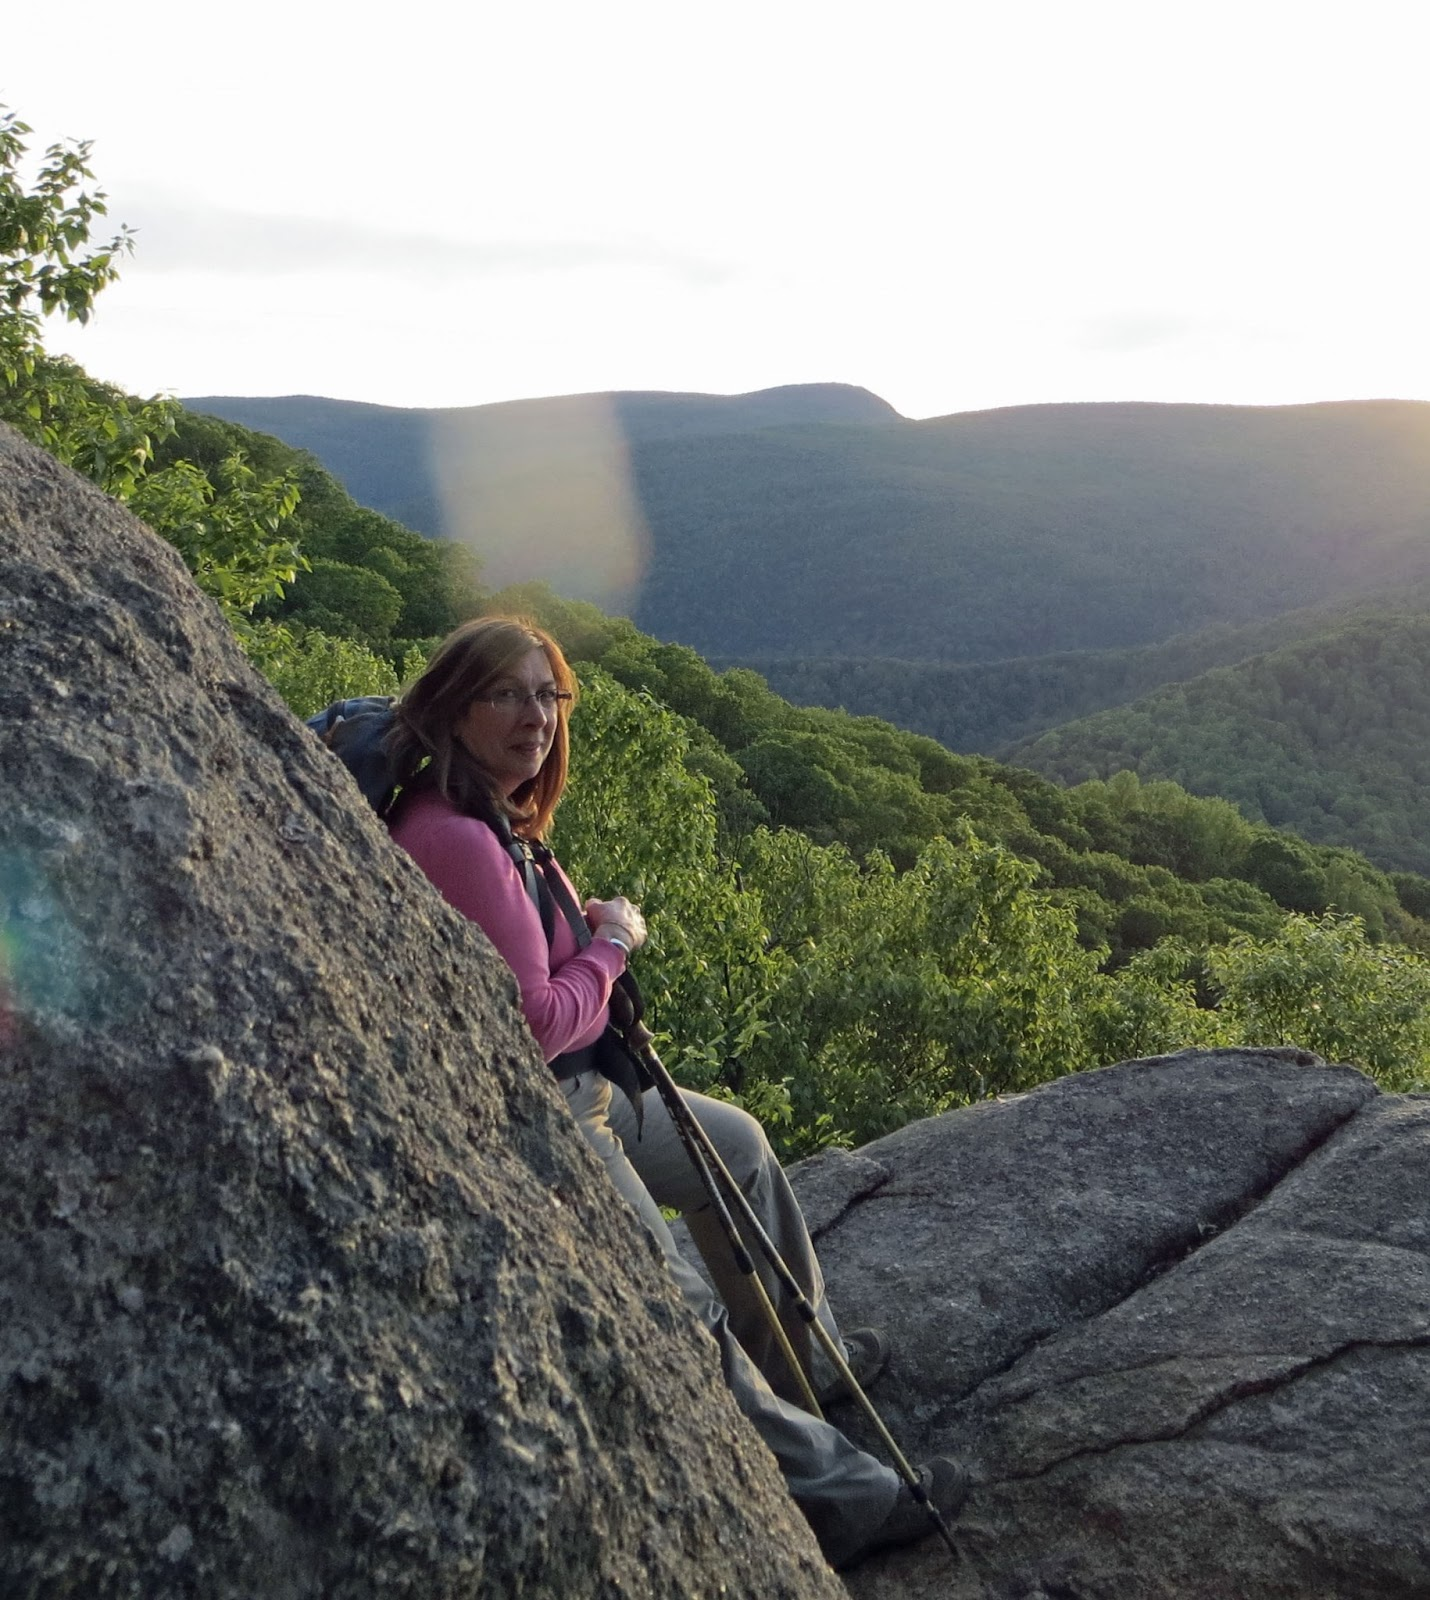 Hiking Old Rag Tips: Old Rag Mountain Hikes/Patrols By RSL: LONG TIME SINCE